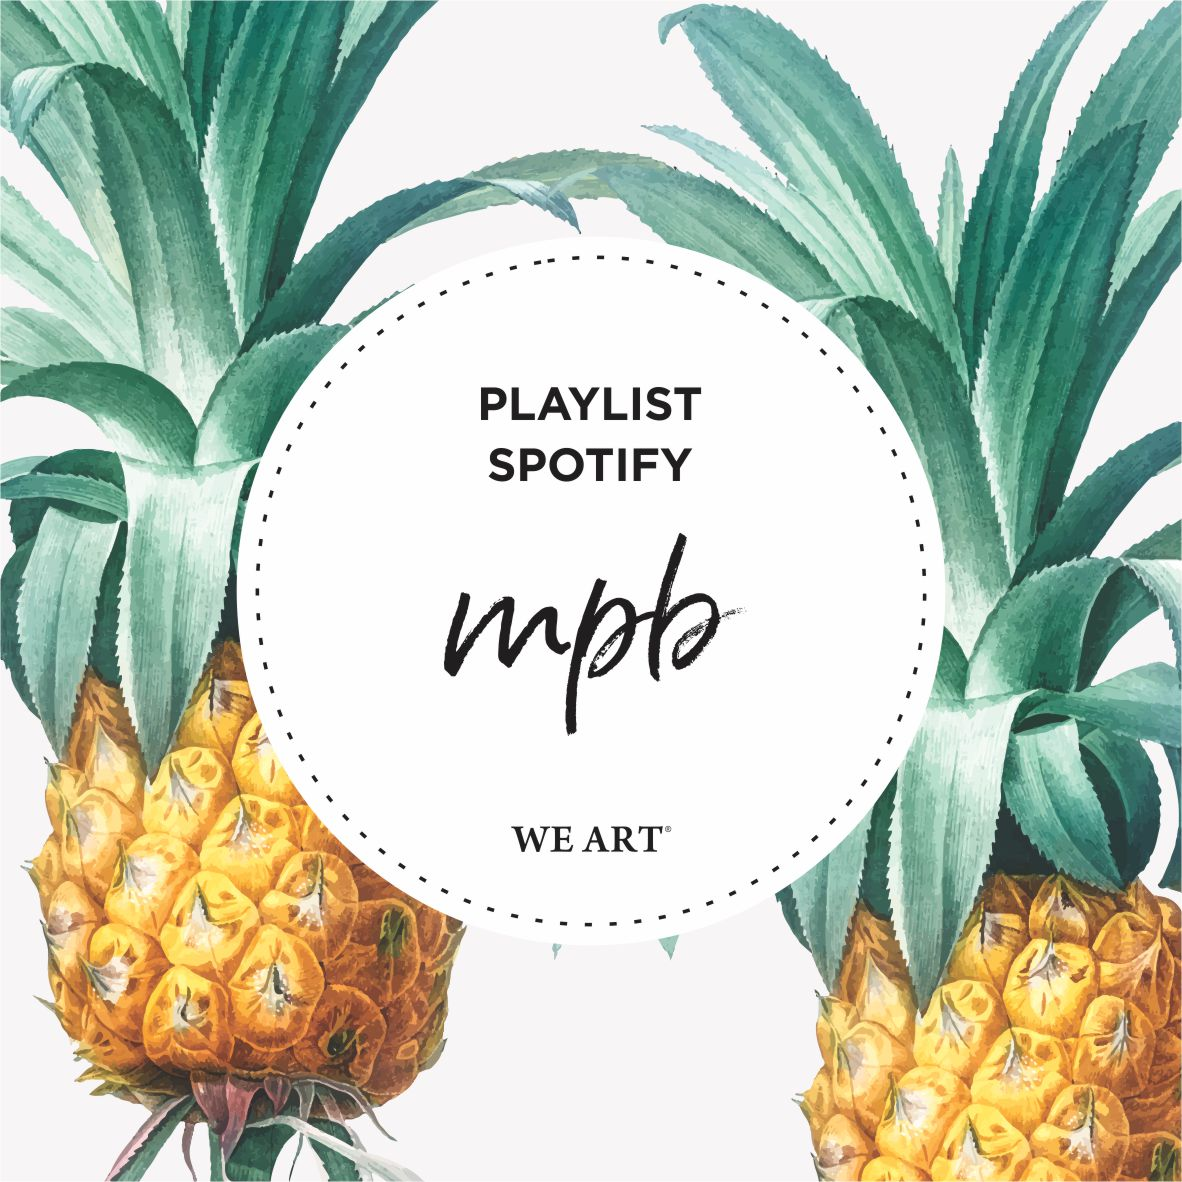 playlist-spotify-we-art-personalizados